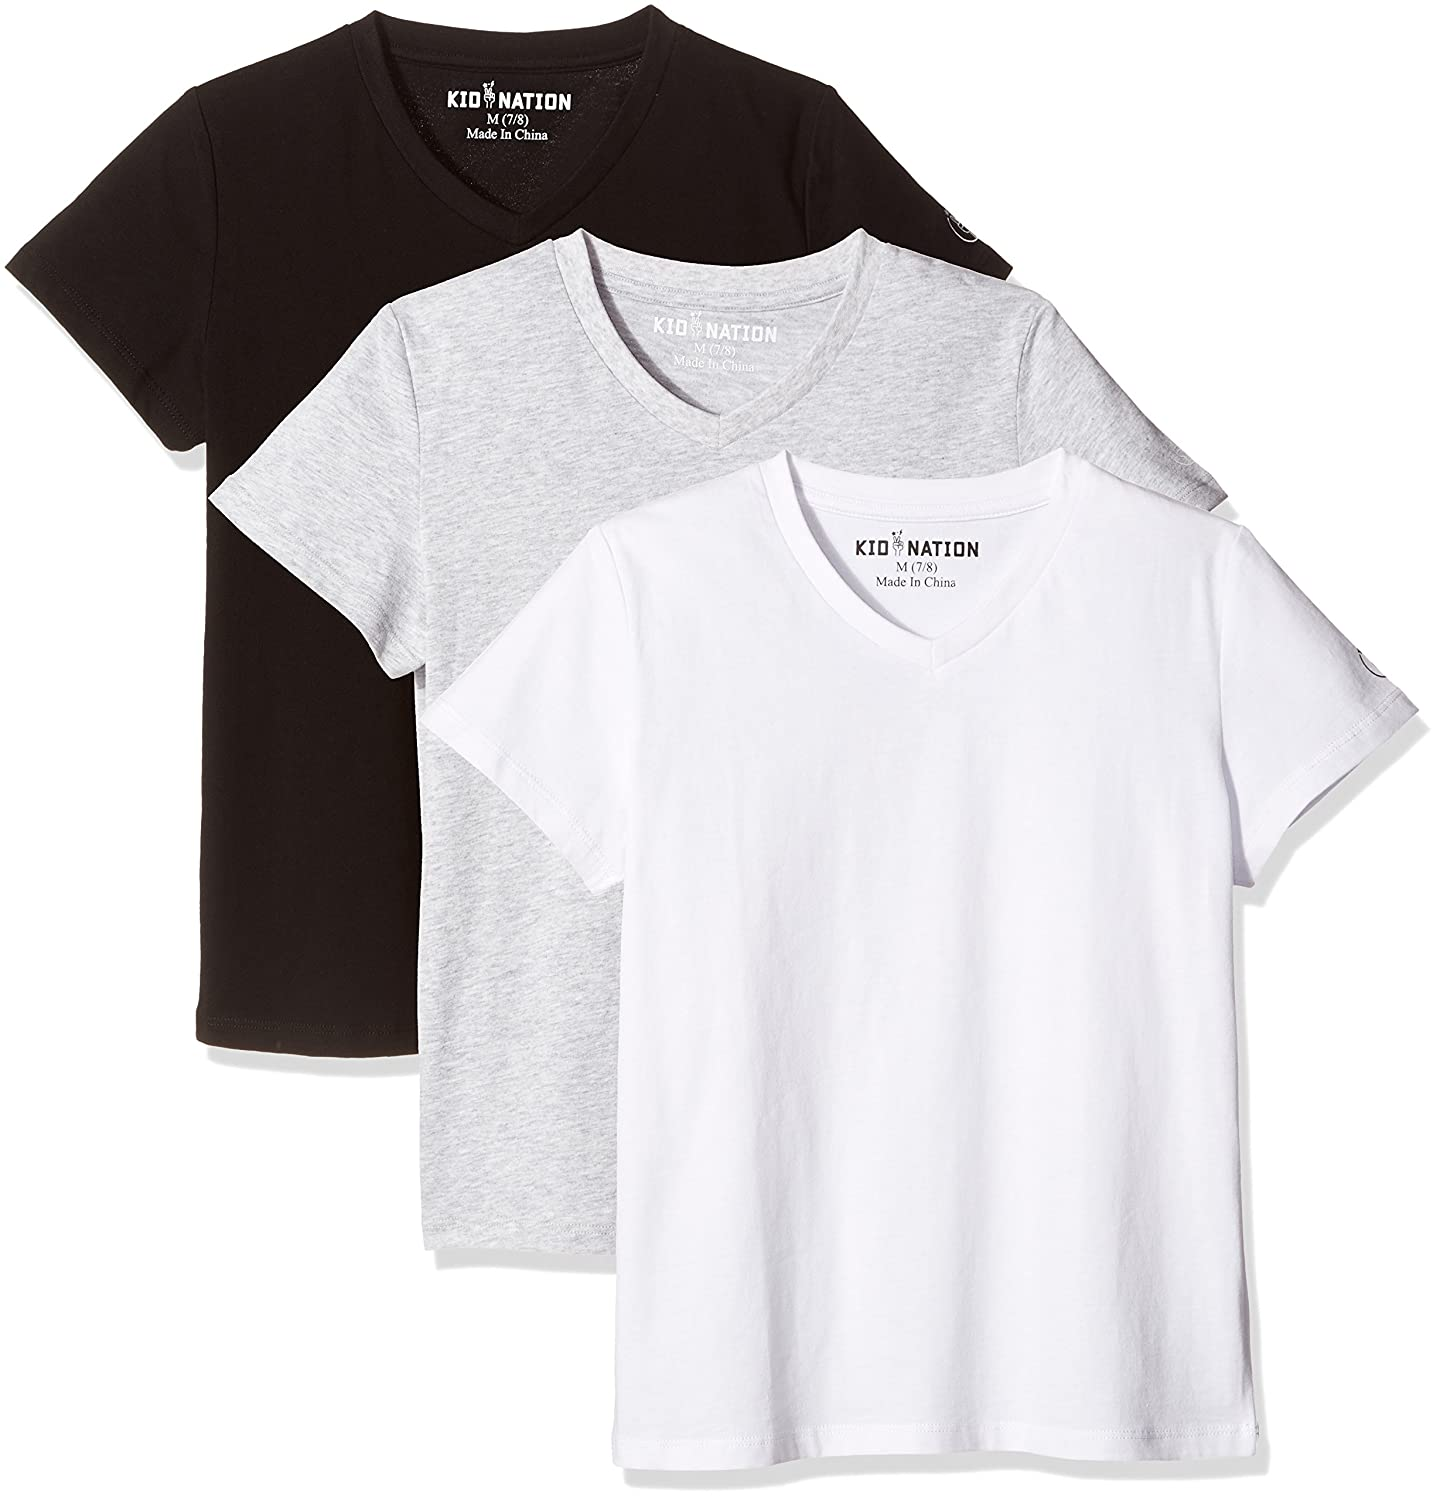 6fa42c27bd62 Amazon.com: Kid Nation Kids' 3-Pack and 2-Pack 100% Cotton Tag-Free Short  Sleeve Basic Jersey V-Neck T-Shirt for Boys or Girls: Clothing